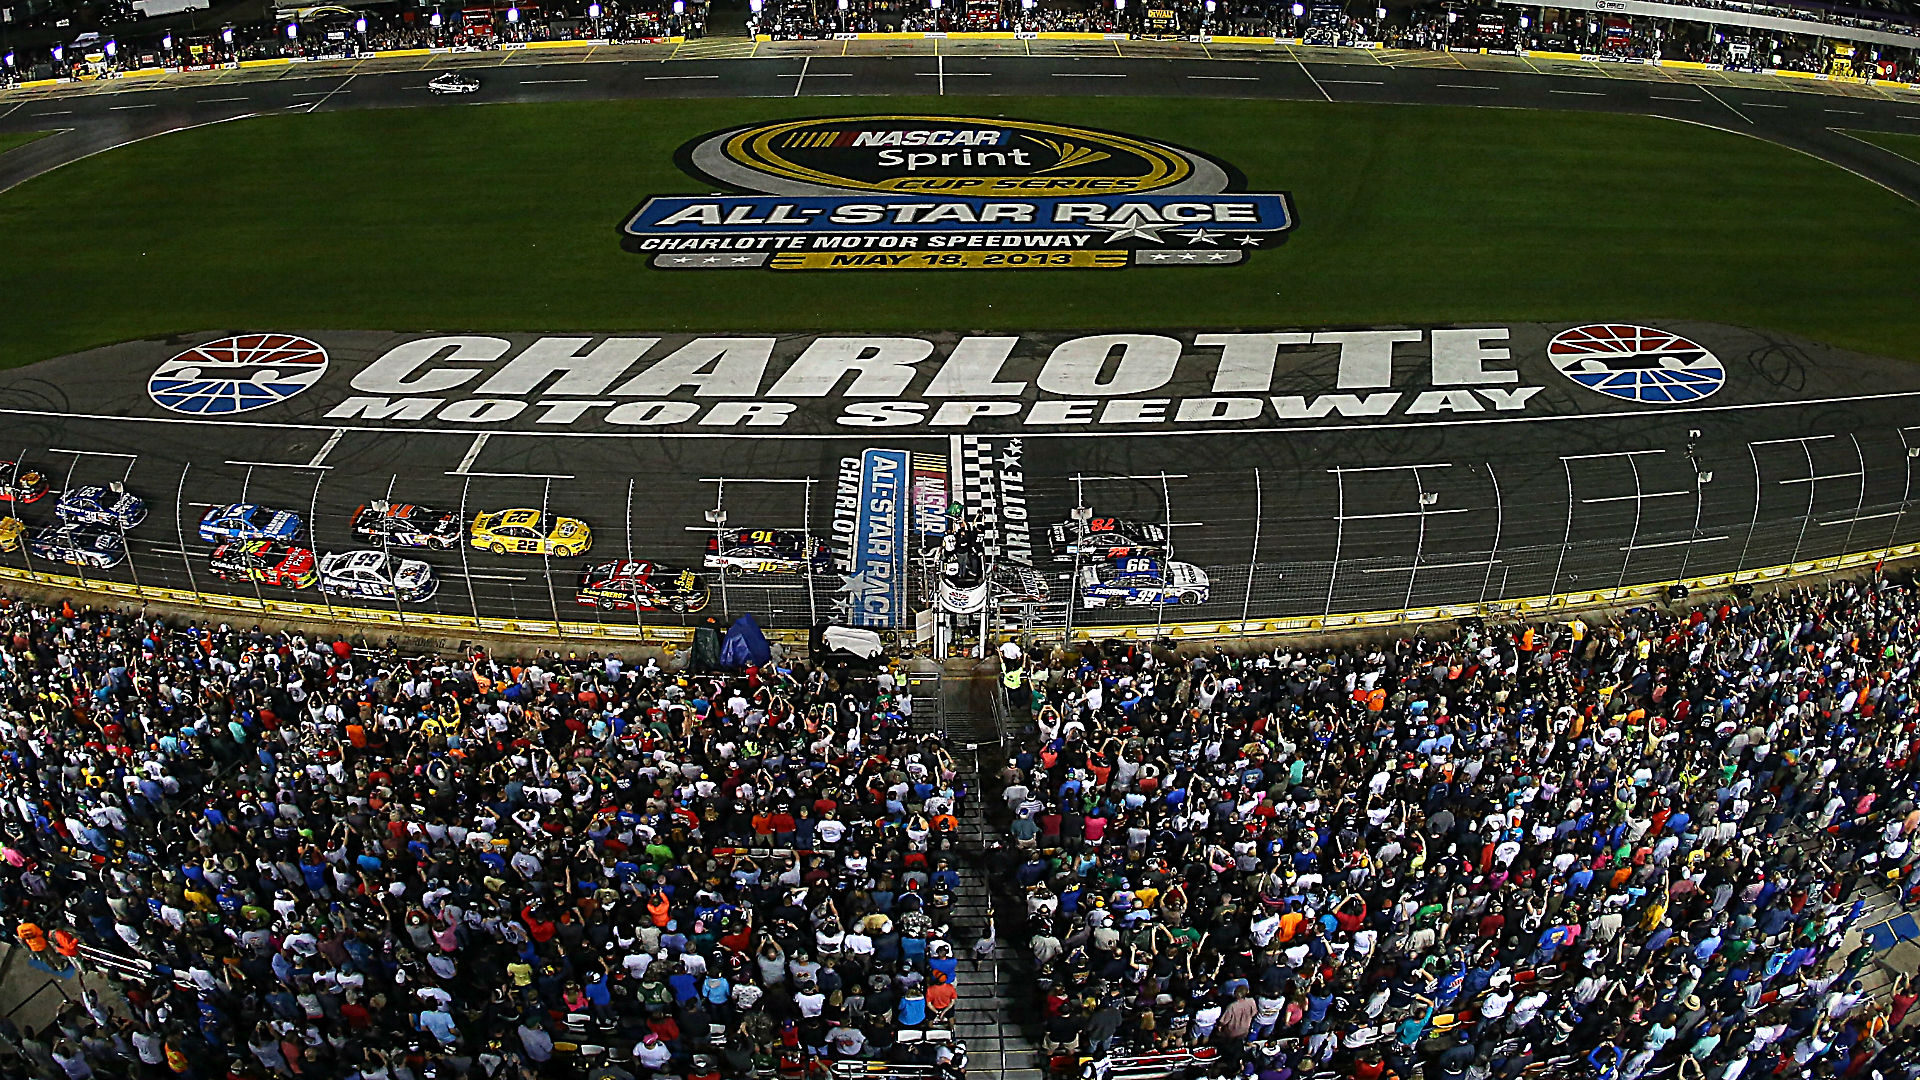 All star race at charlotte motor speedway for Tickets to charlotte motor speedway